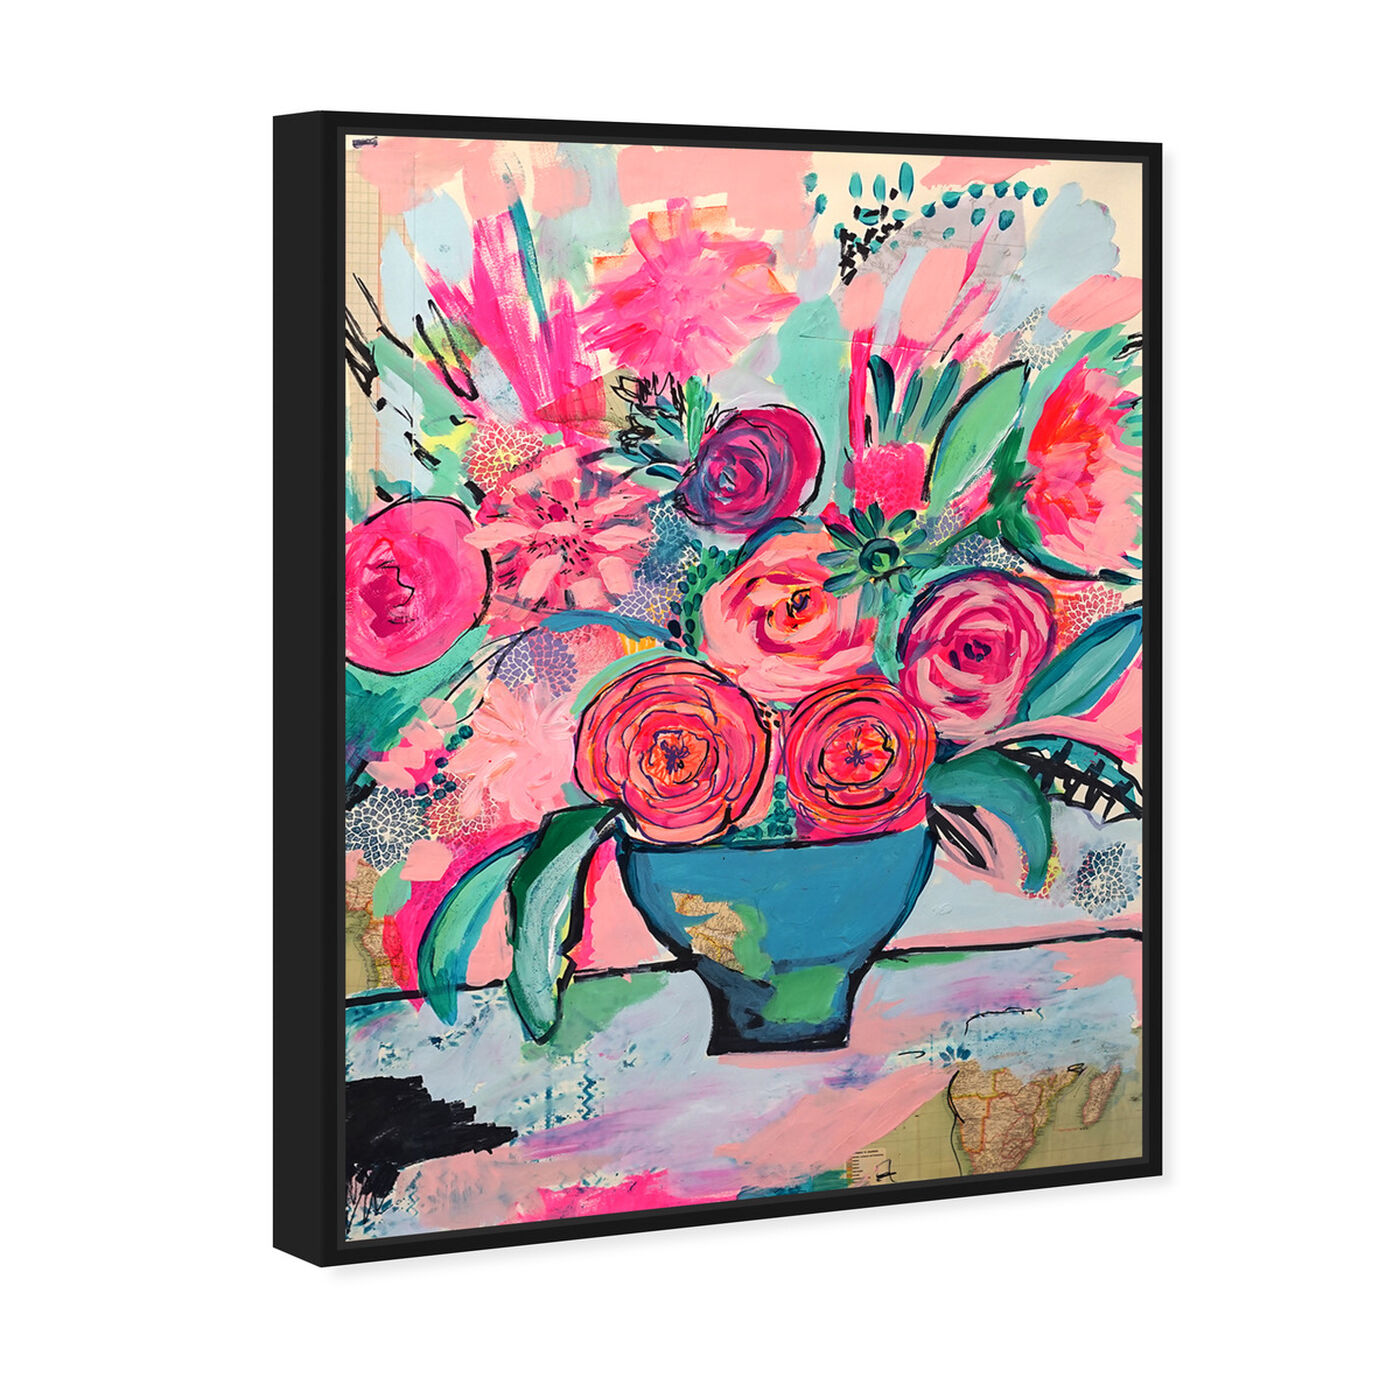 Angled view of Viva la Vida featuring floral and botanical and florals art.